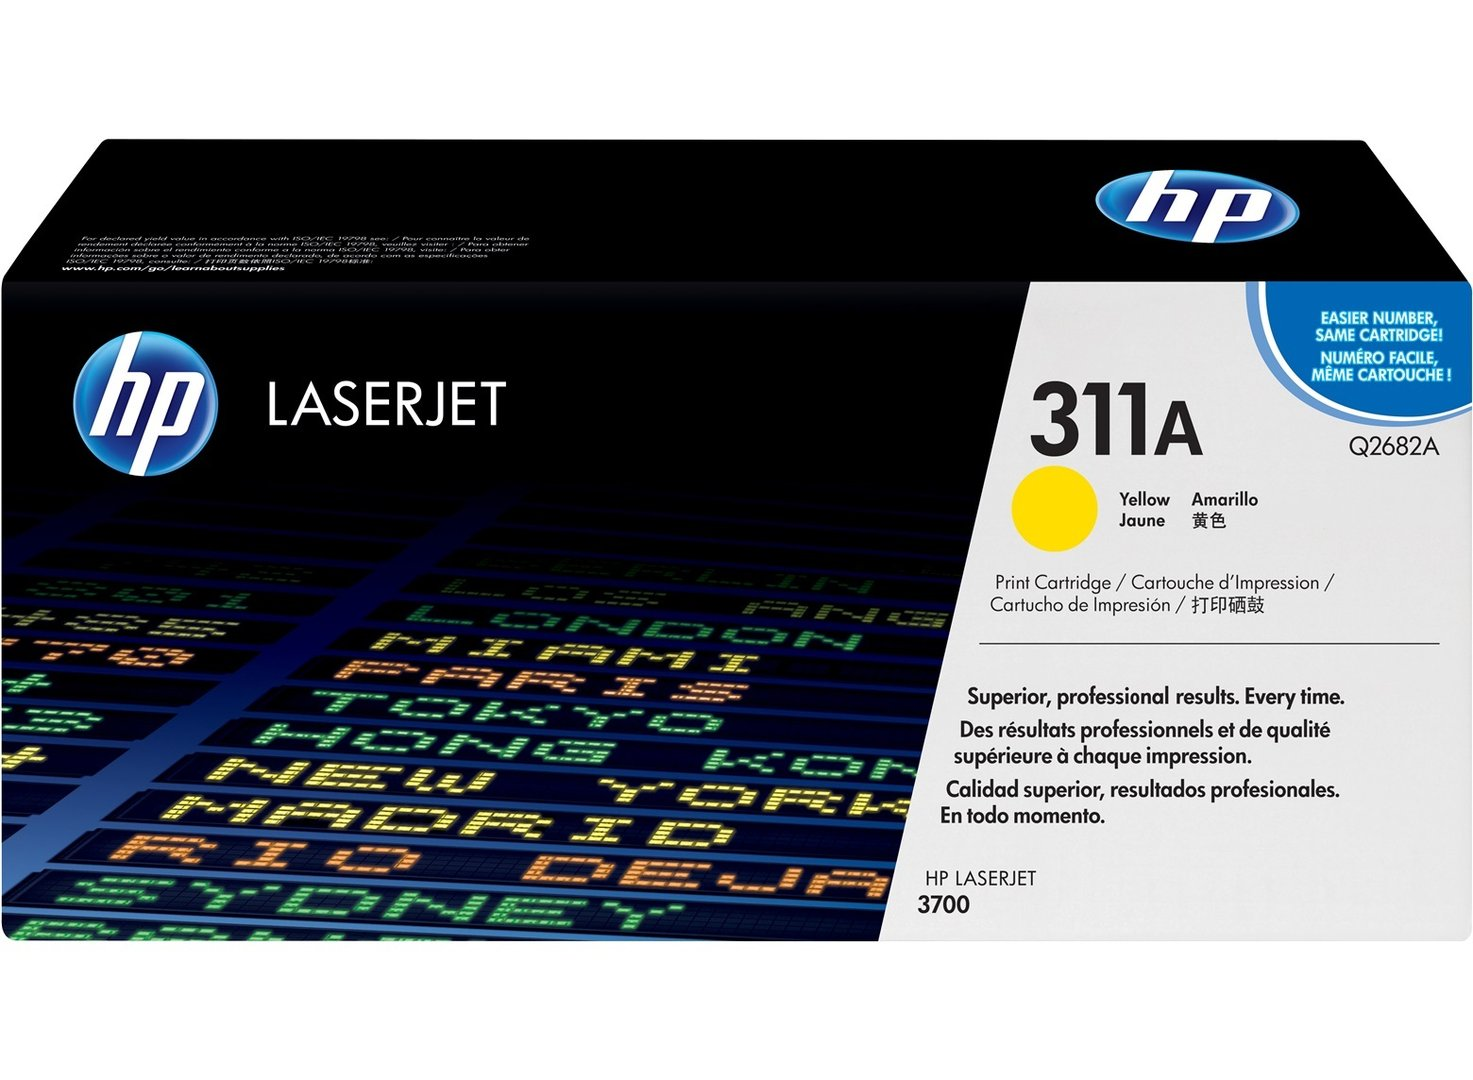 HP Original 311A Yellow Laser Toner Cartridge - Q2682A